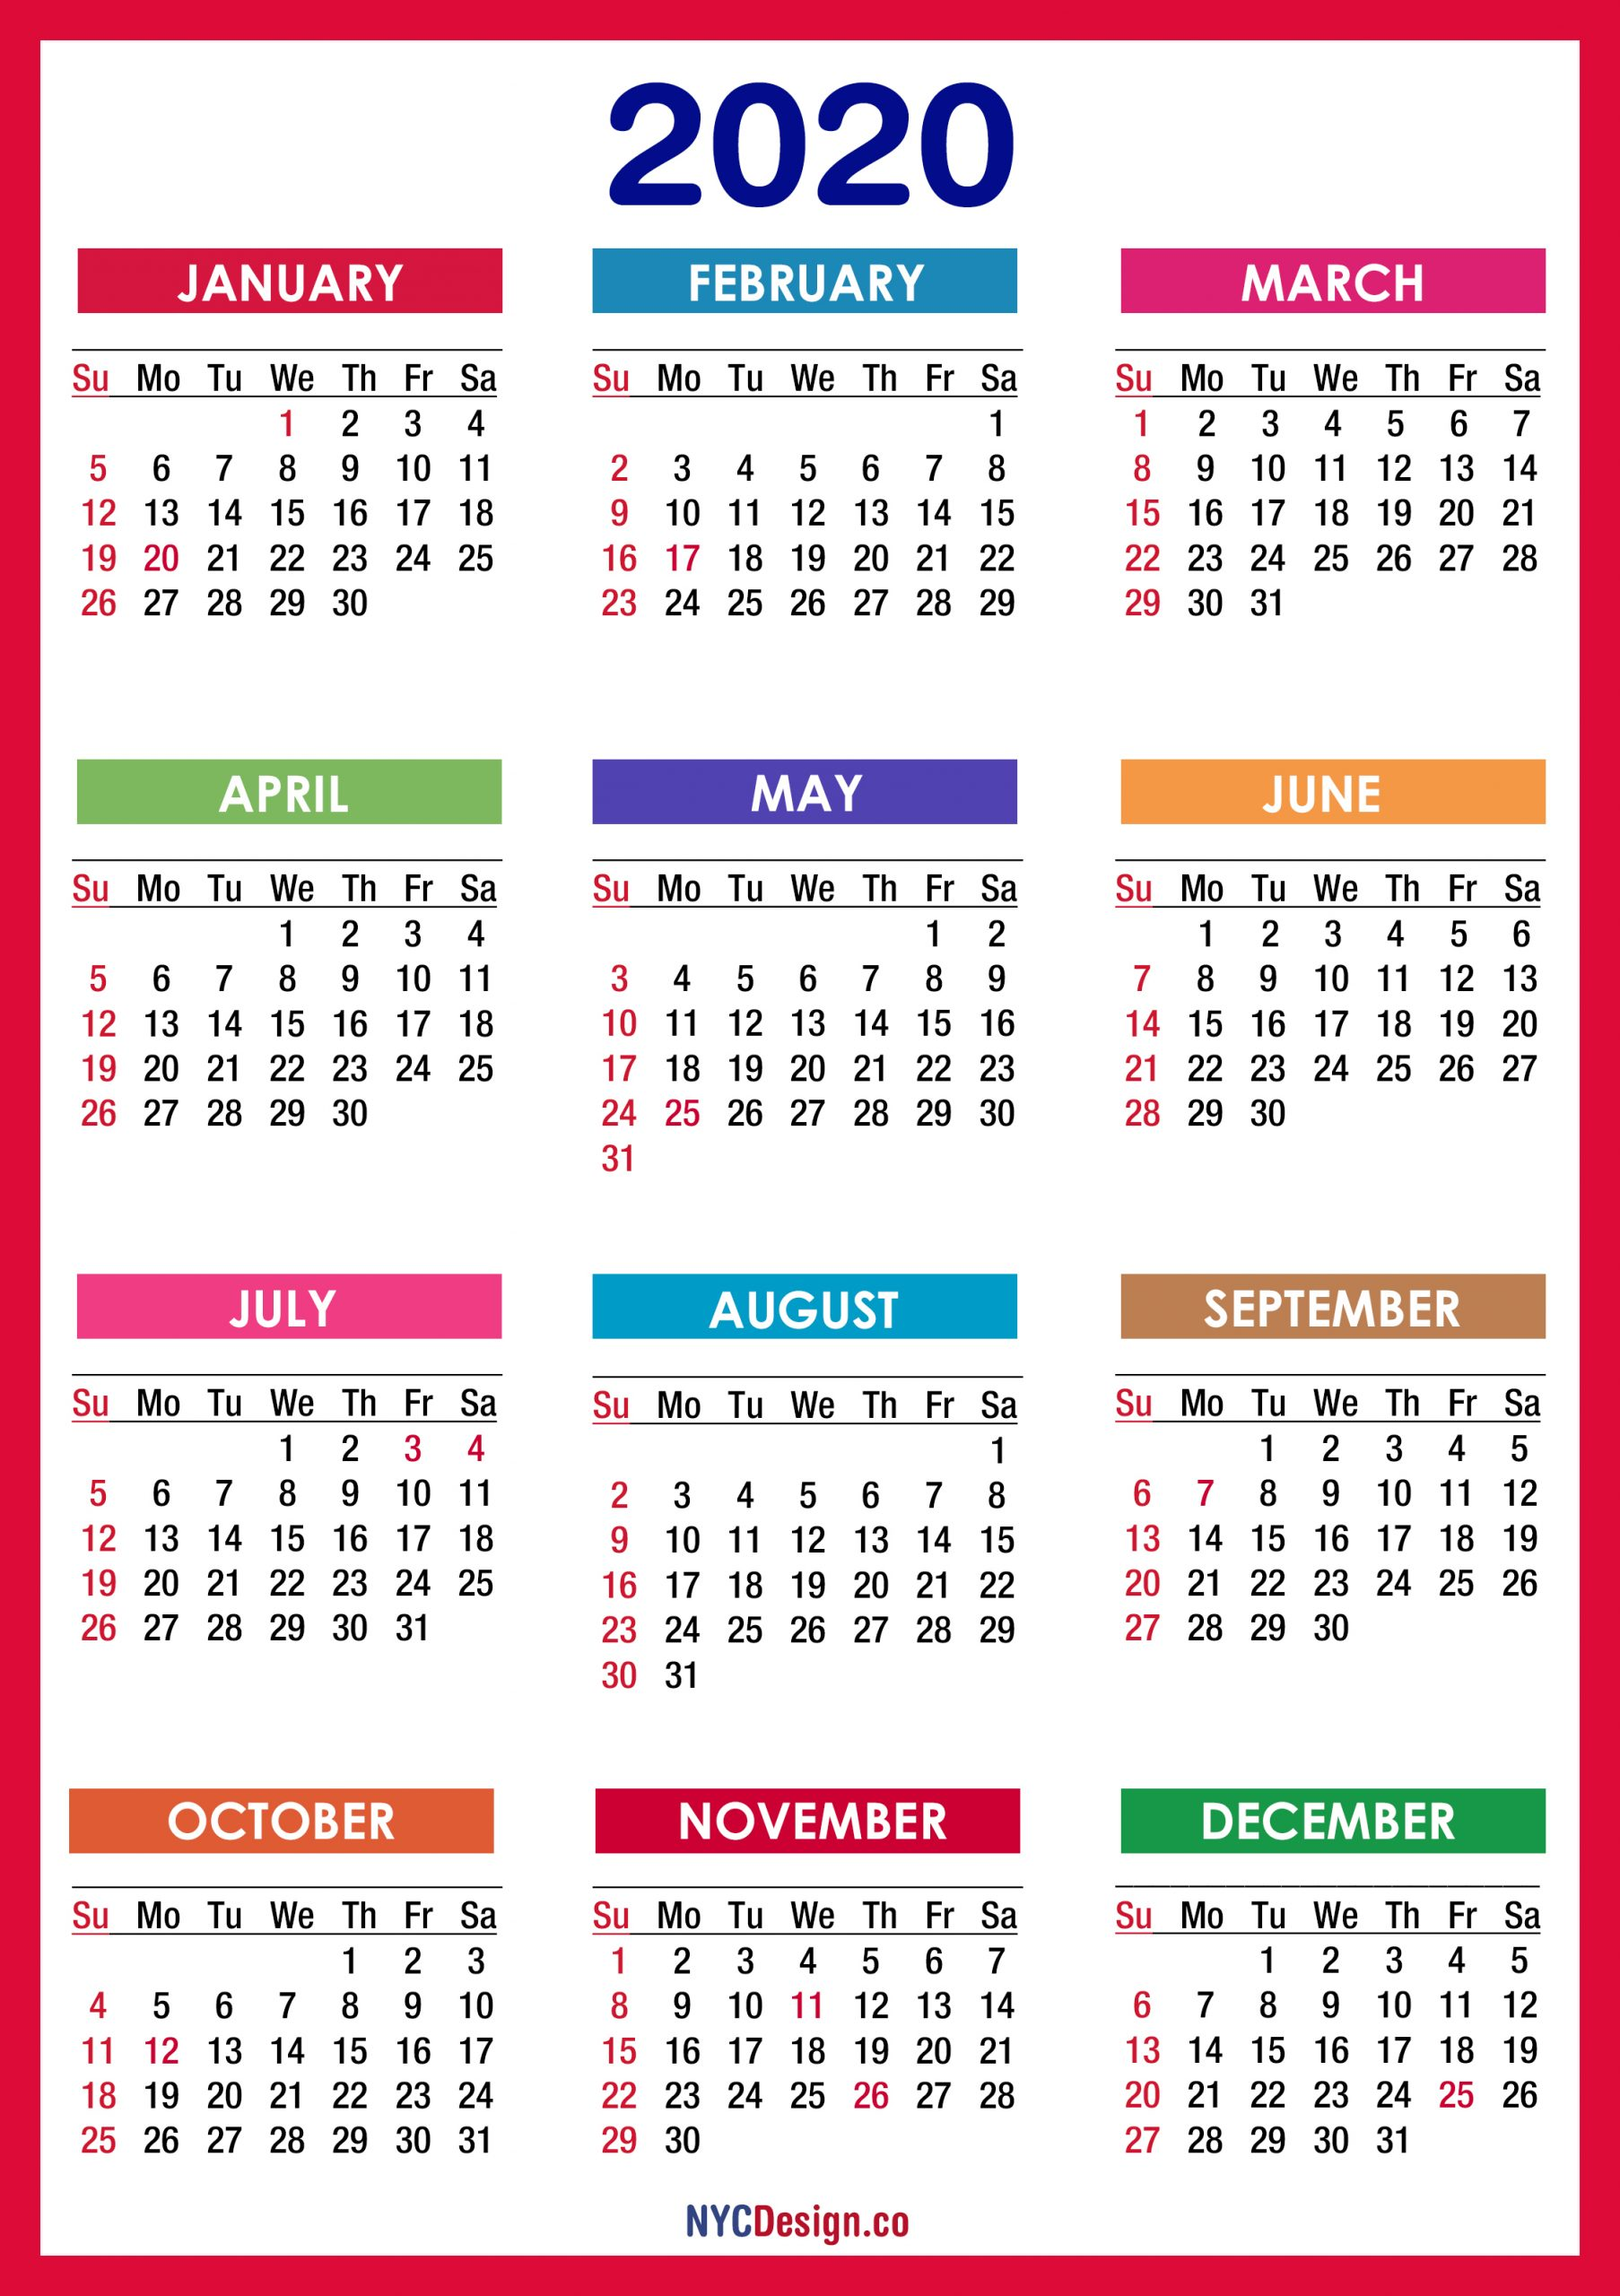 2020 Calendar With Holidays, Printable Free, Pdf, Colorful